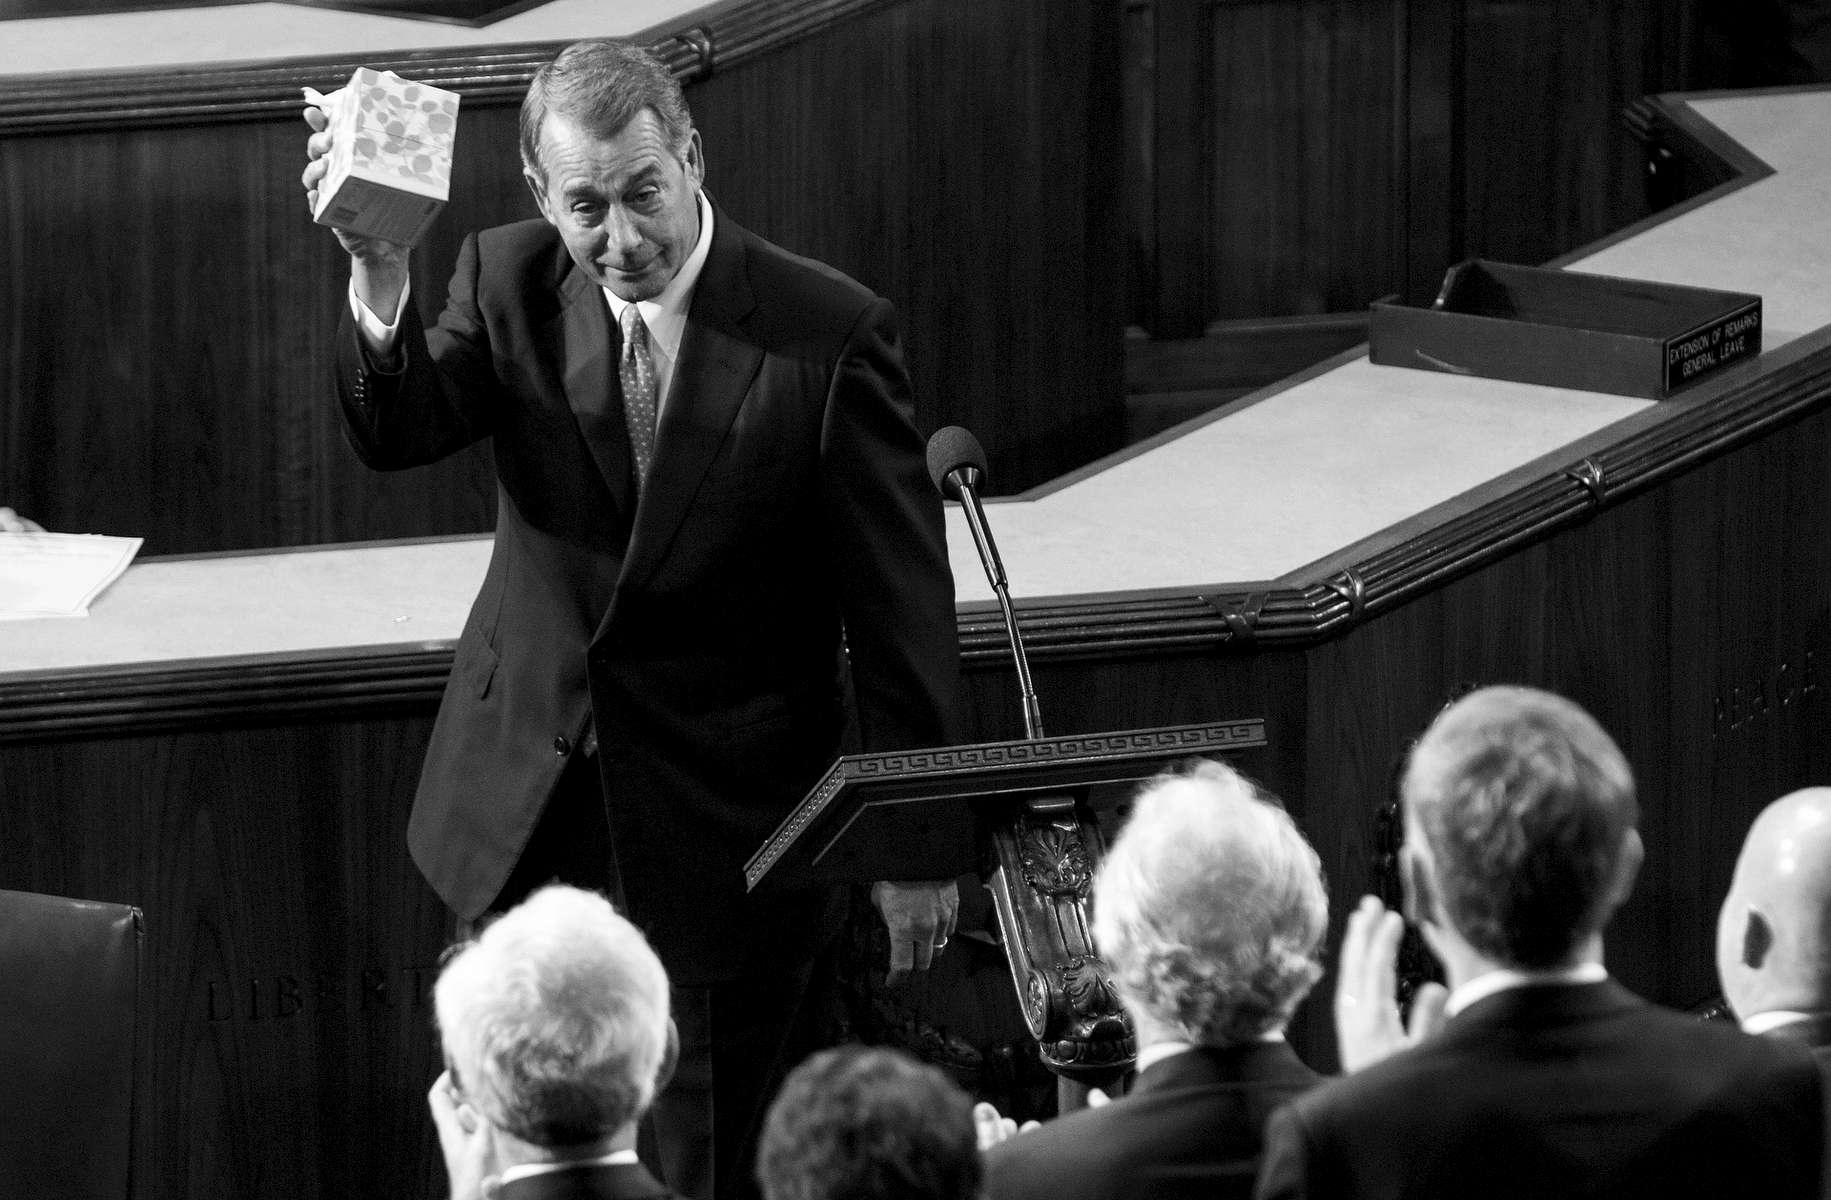 Student Photographer of the Year: Runner UpAl Drago, Elon UniversityOutgoing House Speaker John Boehner, R-Ohio, holds up a box of tissues while speaking in the House Chamber on Capitol Hill in Washington, Thursday, Oct. 29, 2015, as Rep. Paul Ryan, R-Wis., is expected to be voted in as the new House Speaker.